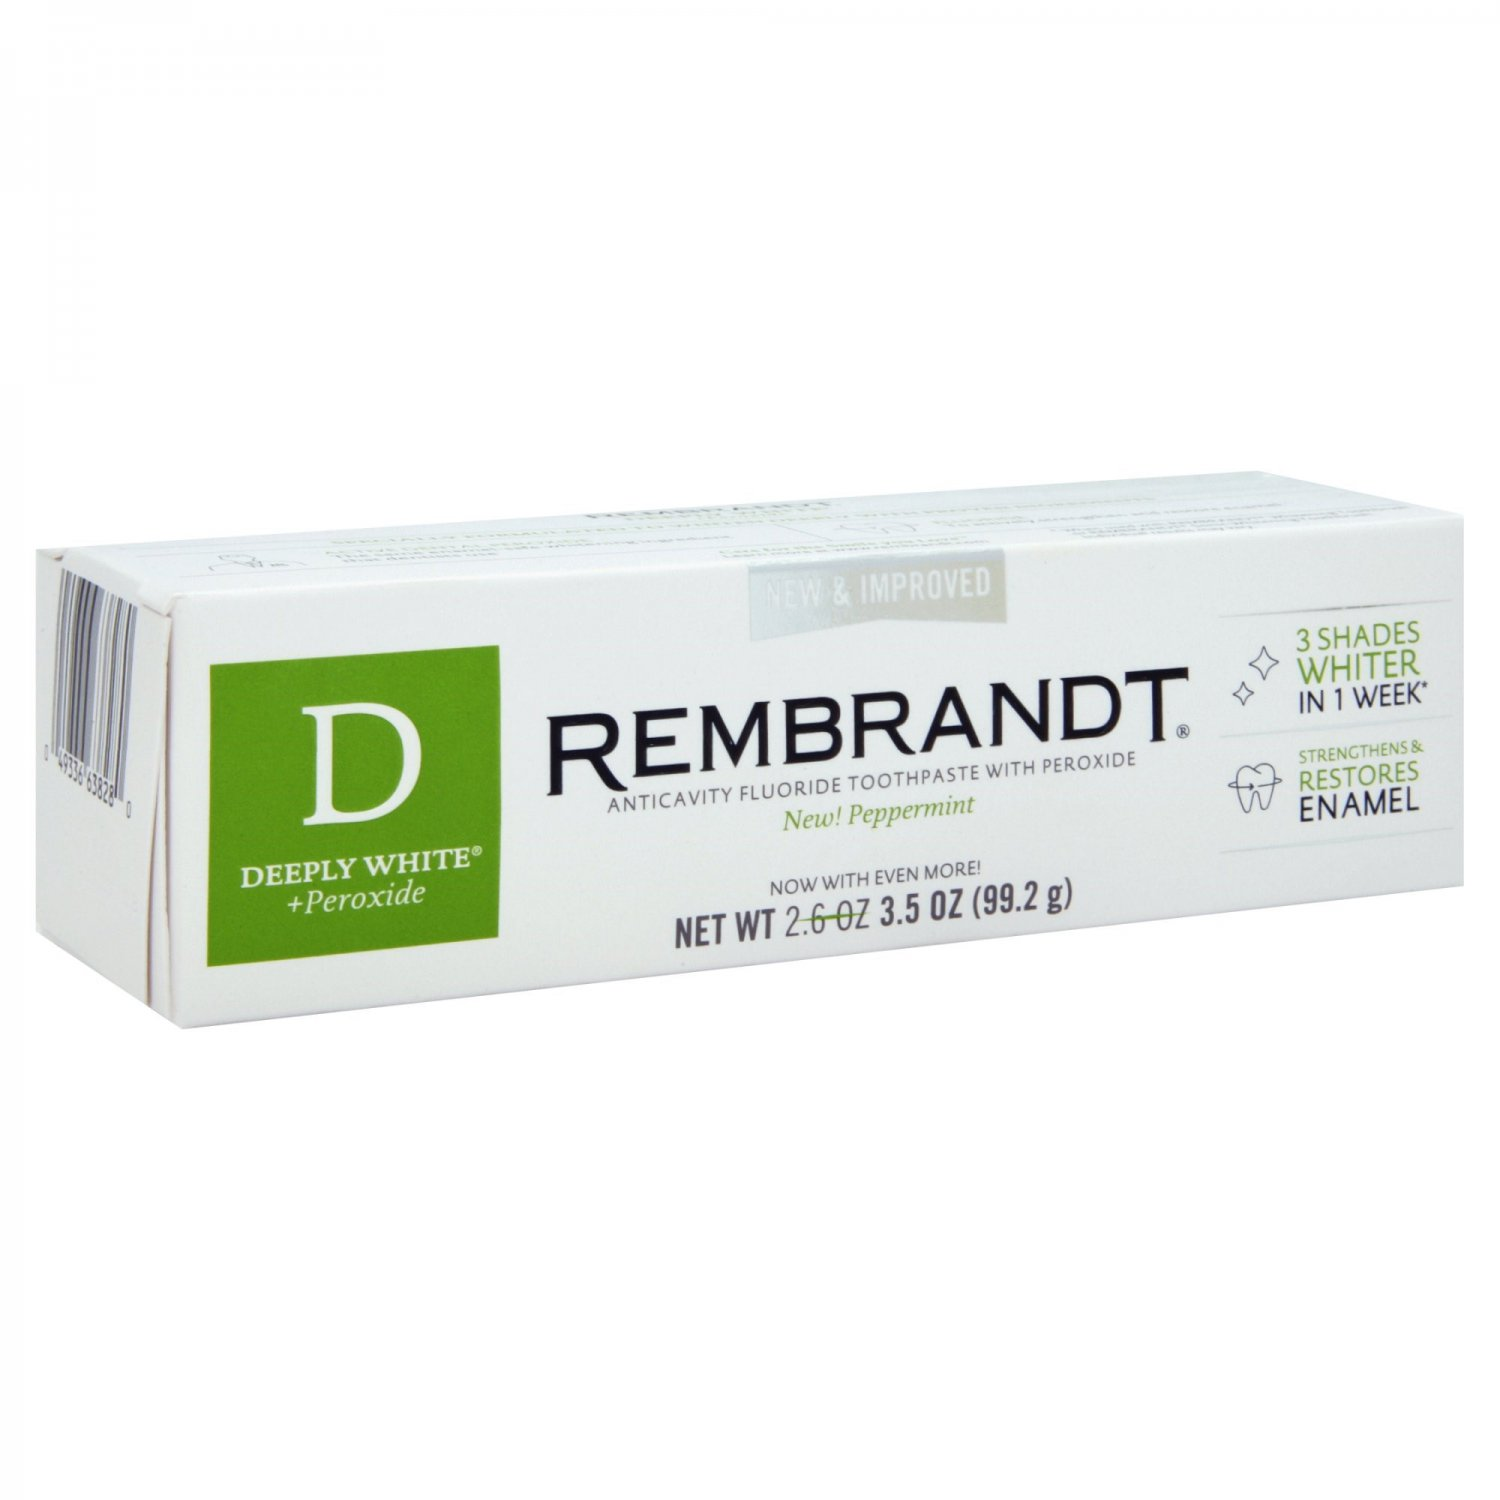 Rembrandt Anticavity Fluoride Toothpaste, 3.5 oz (99.2 g), Peppermint, Deeply White + Peroxide